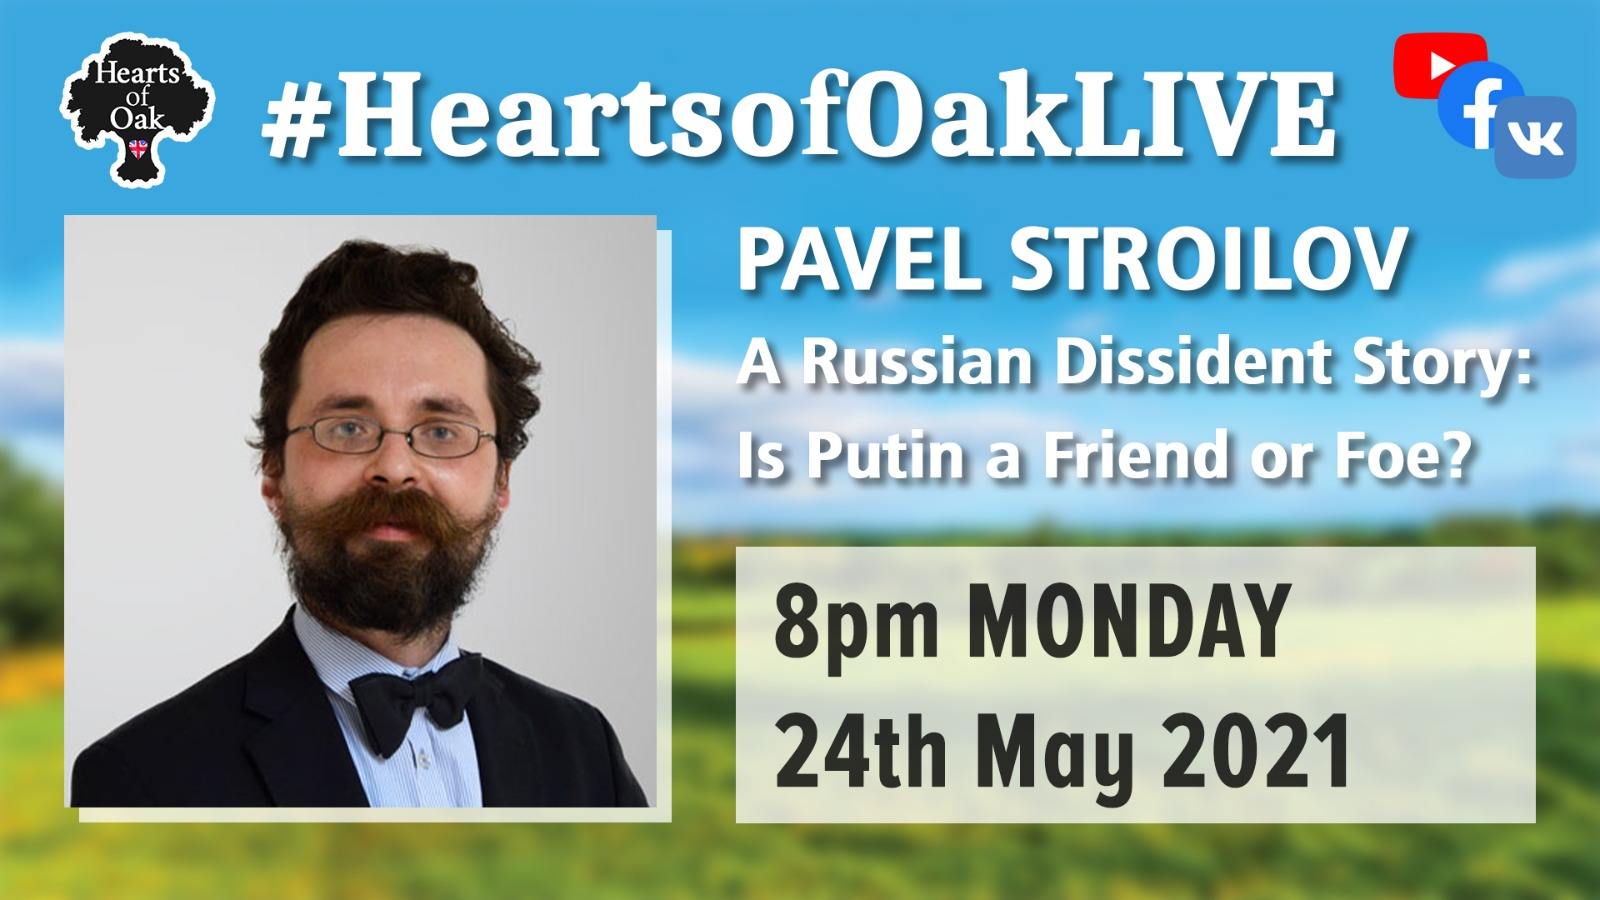 Pavel Stroilov: A Russian Dissident Story - Is Putin Friend of Foe?